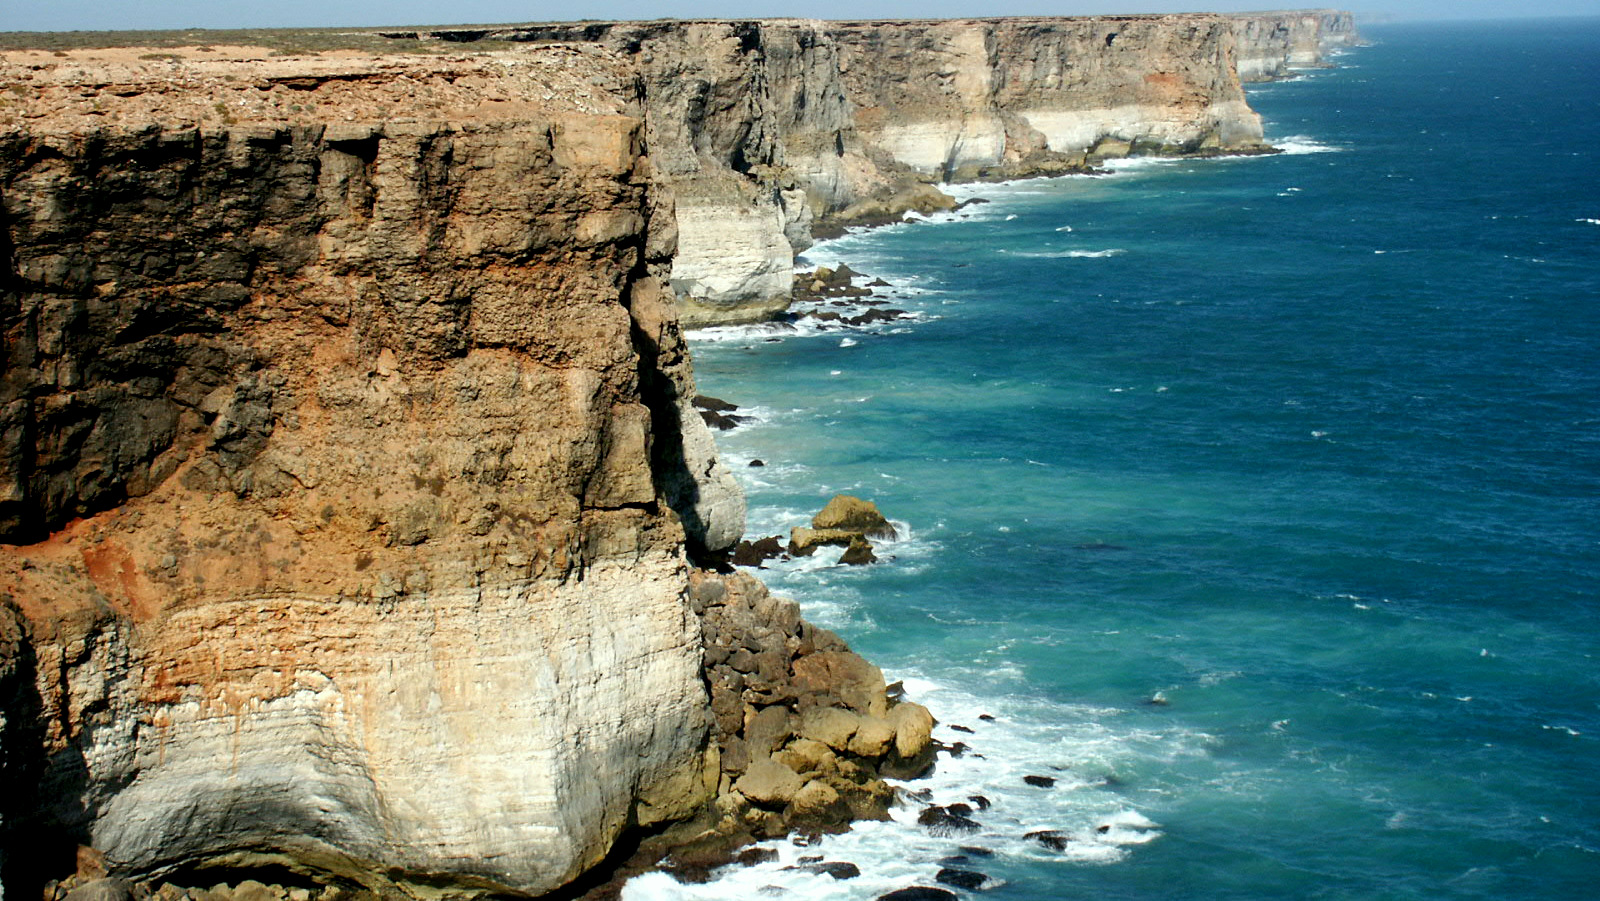 The Great Australian Bight is a large open bay off the southern coastline of mainland Australia.